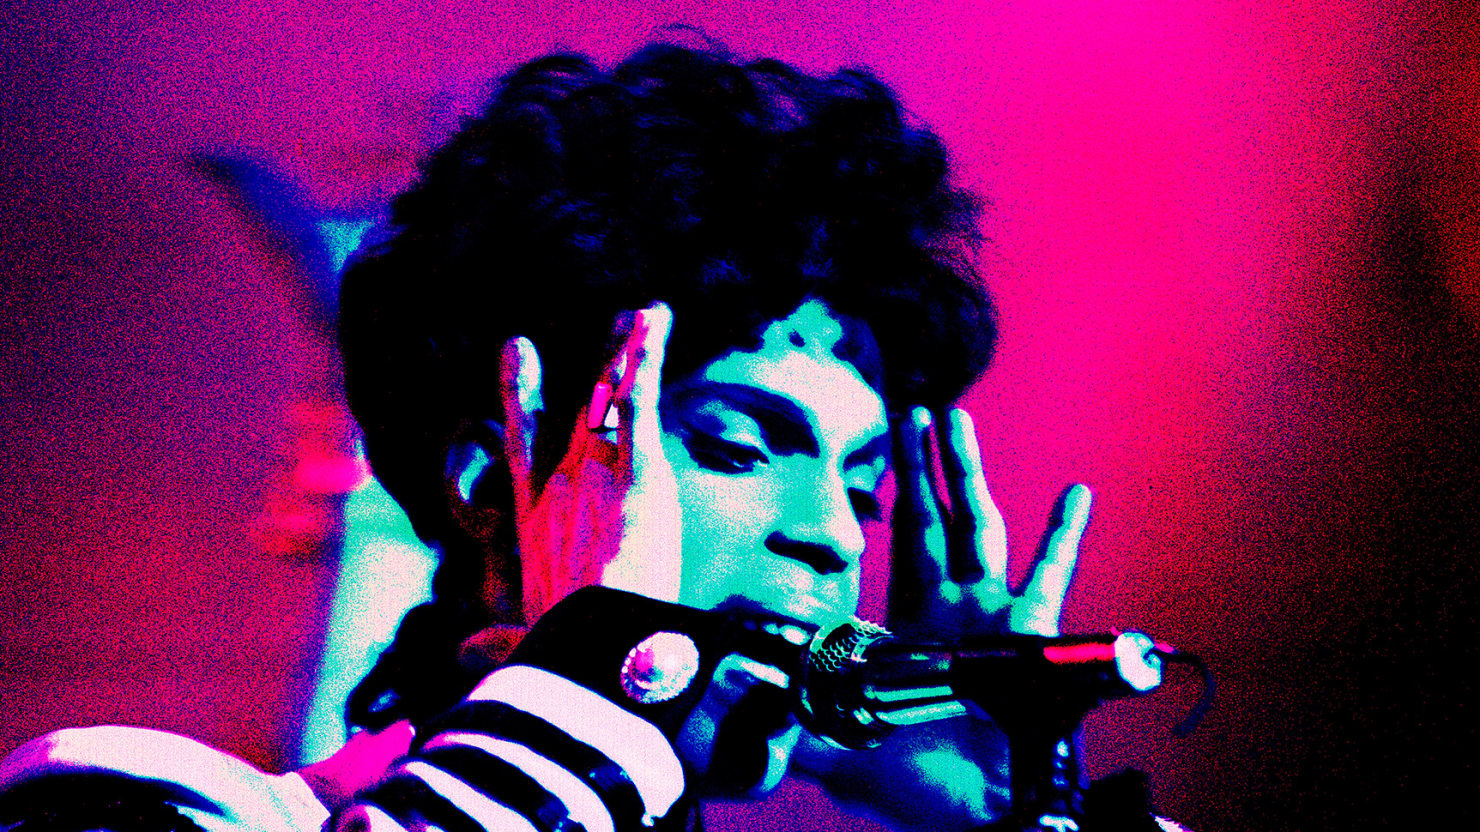 Suboxone Saves Lives. Could It Have Saved Prince?